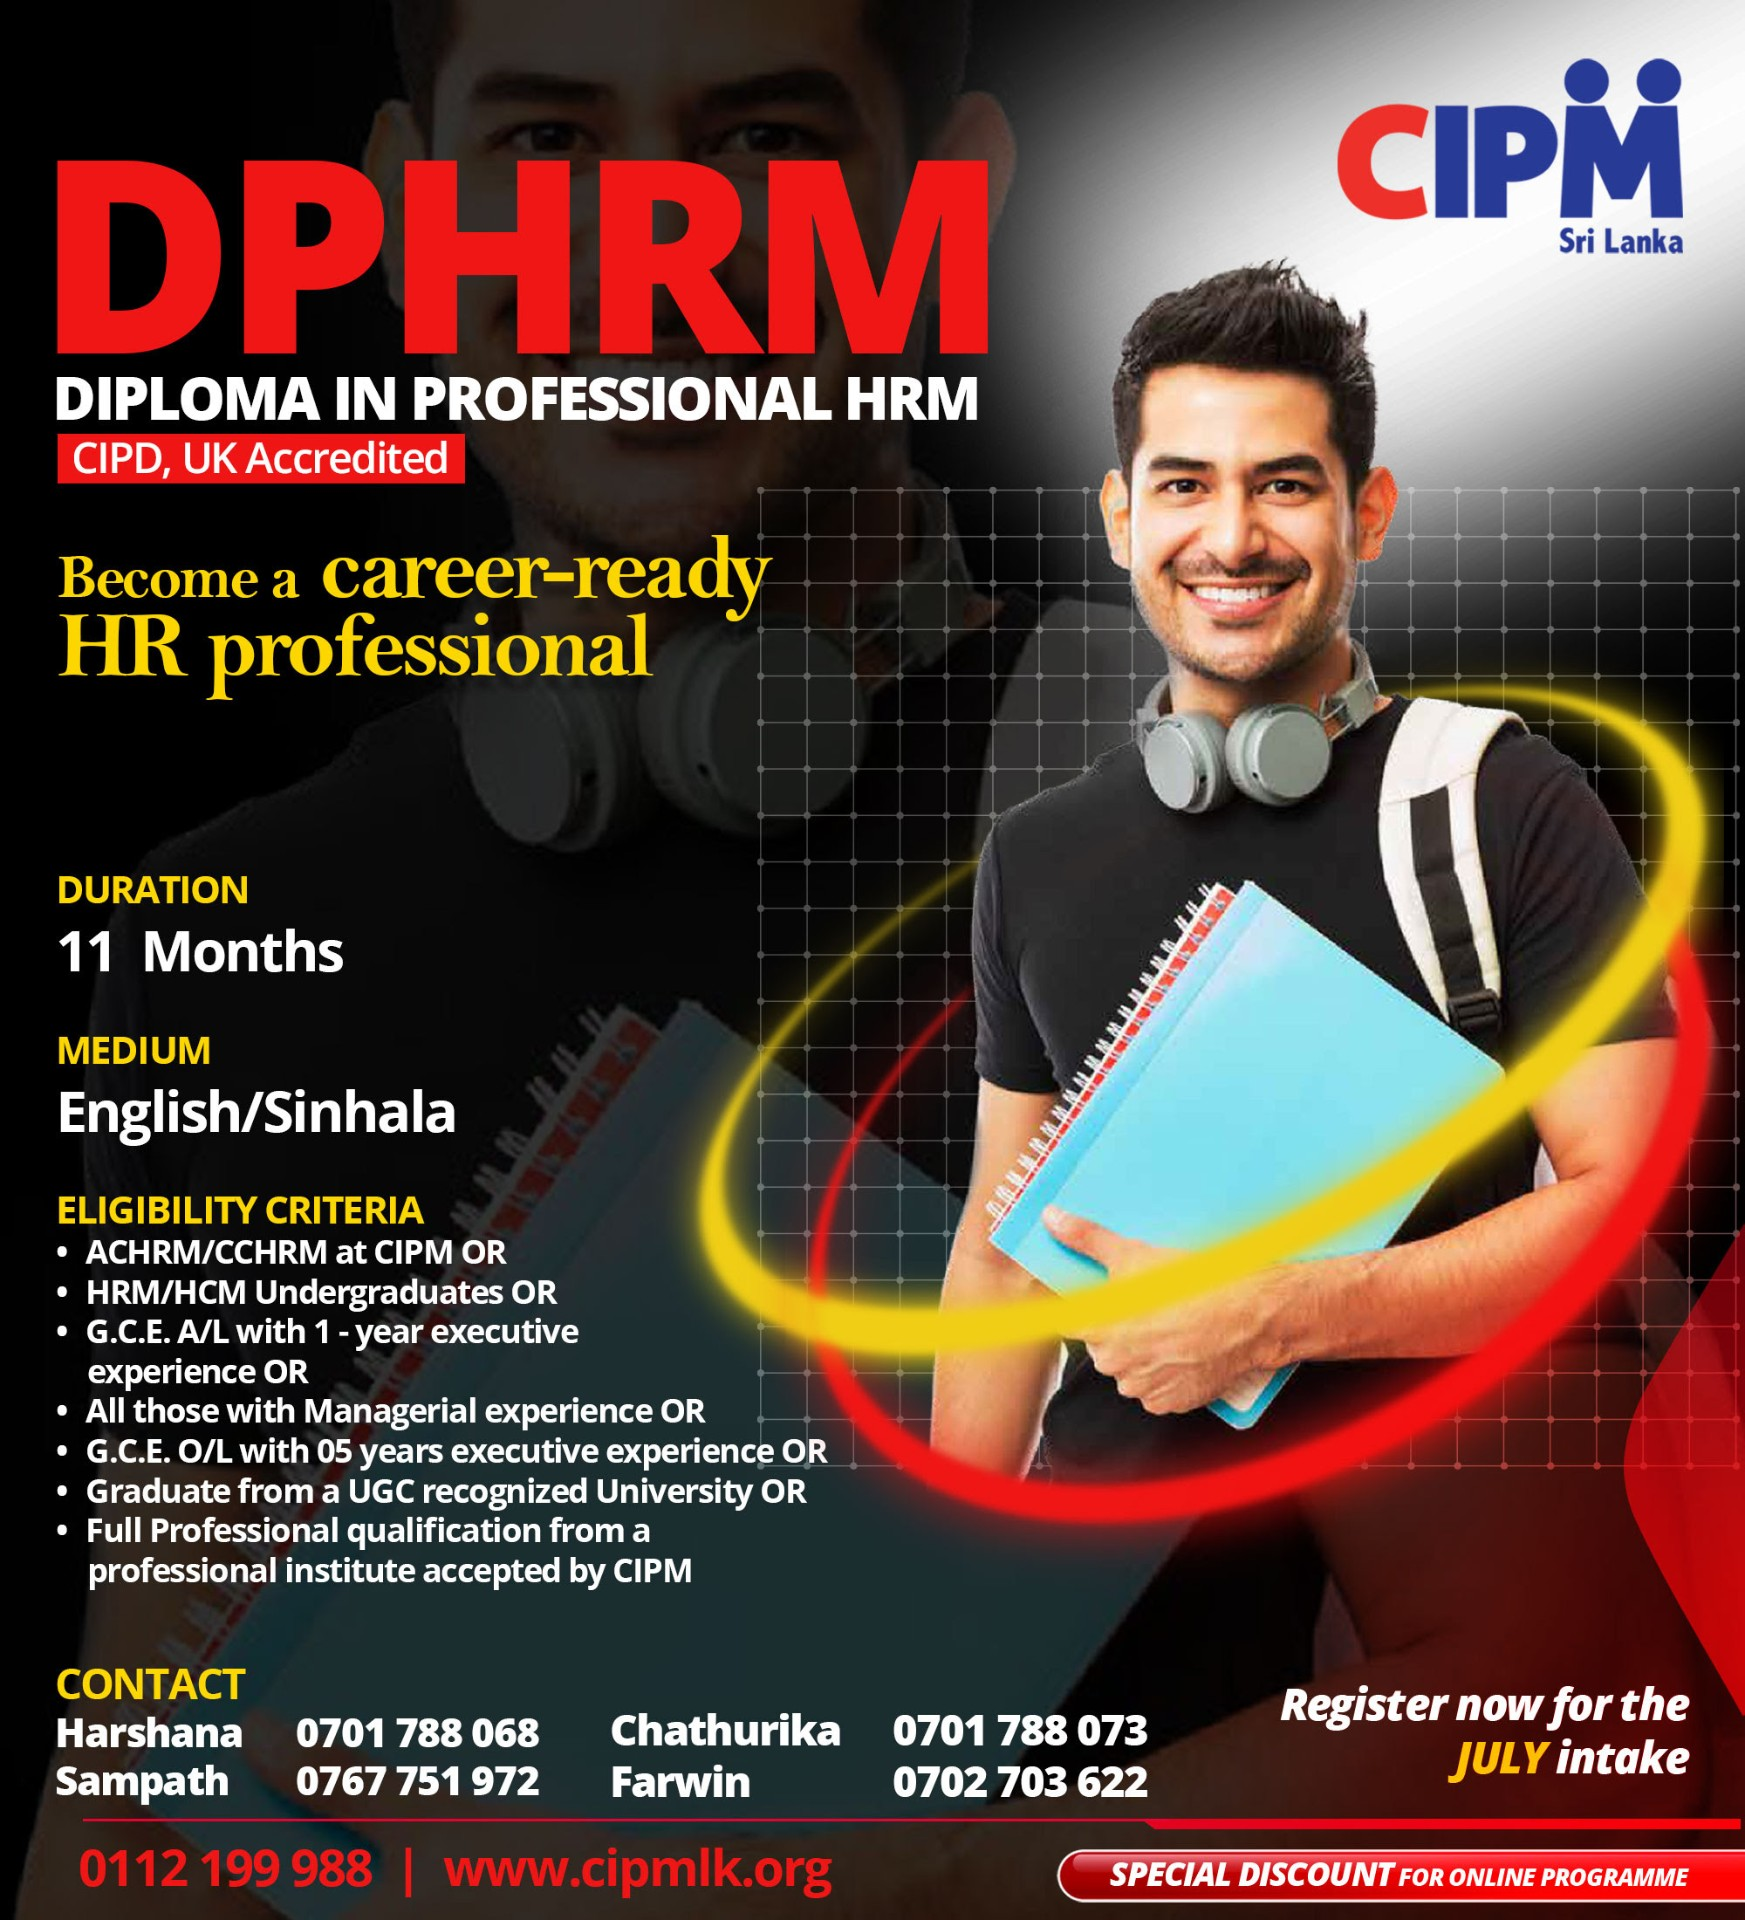 Diploma in Professional HRM